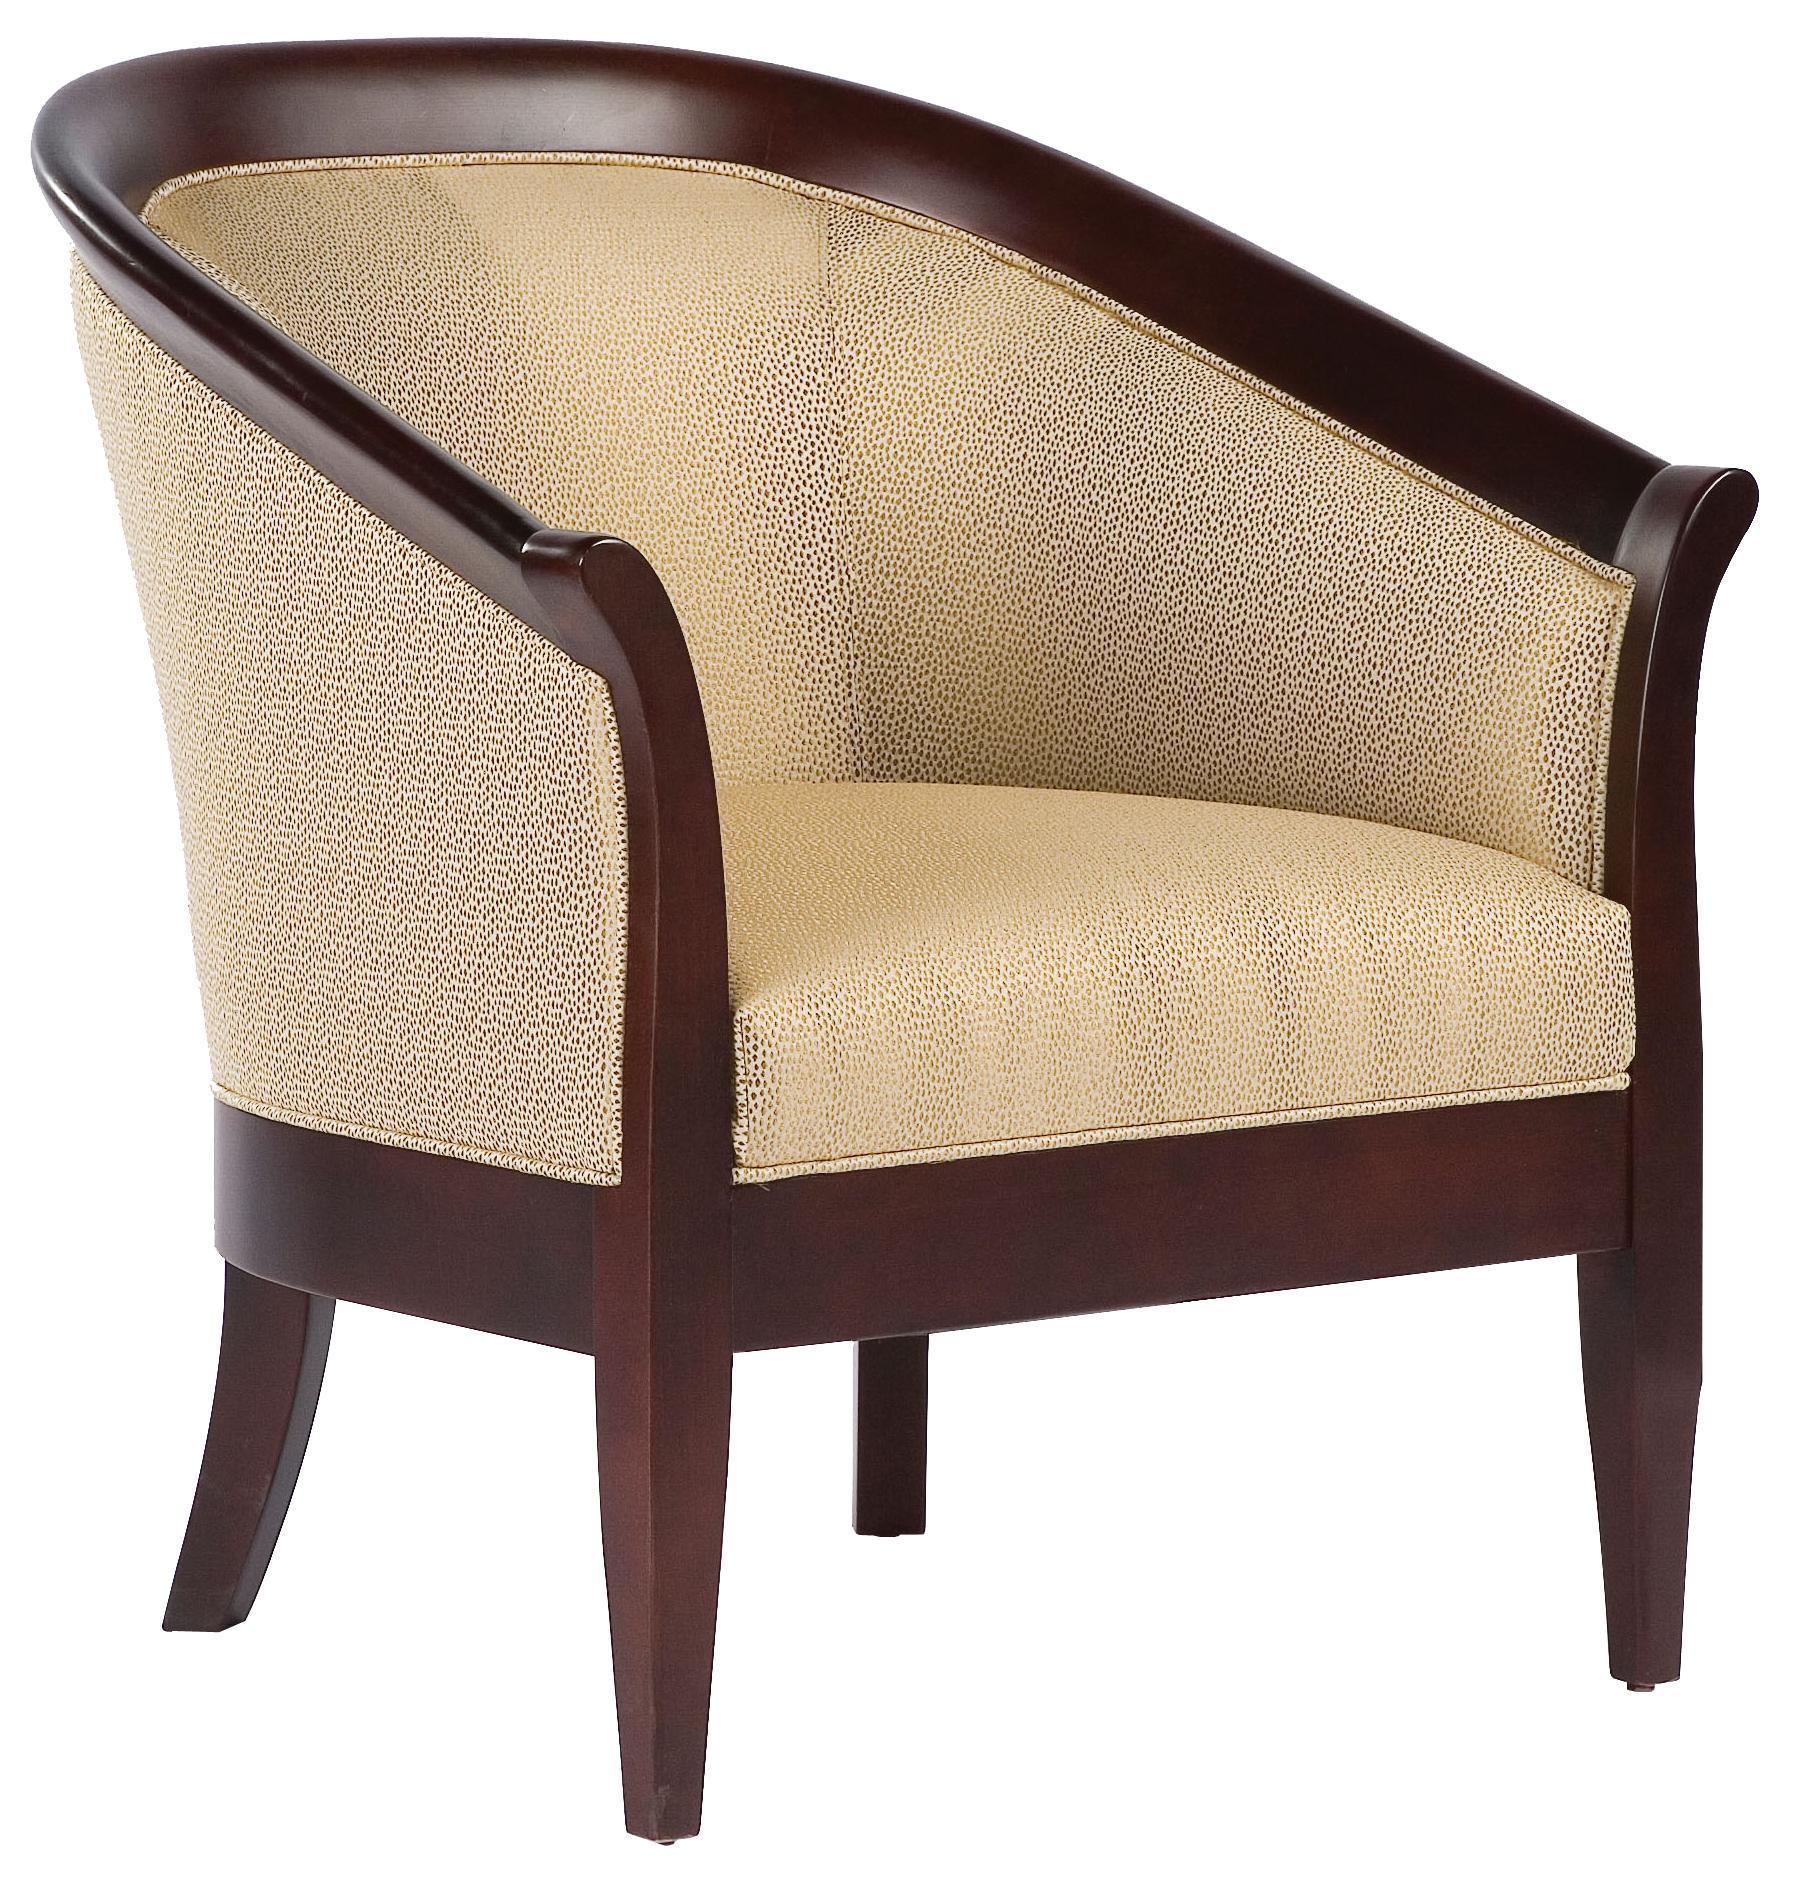 Fairfield Chairs Fairfield Chairs High Arm Wrap Around Accent Chair Belfort